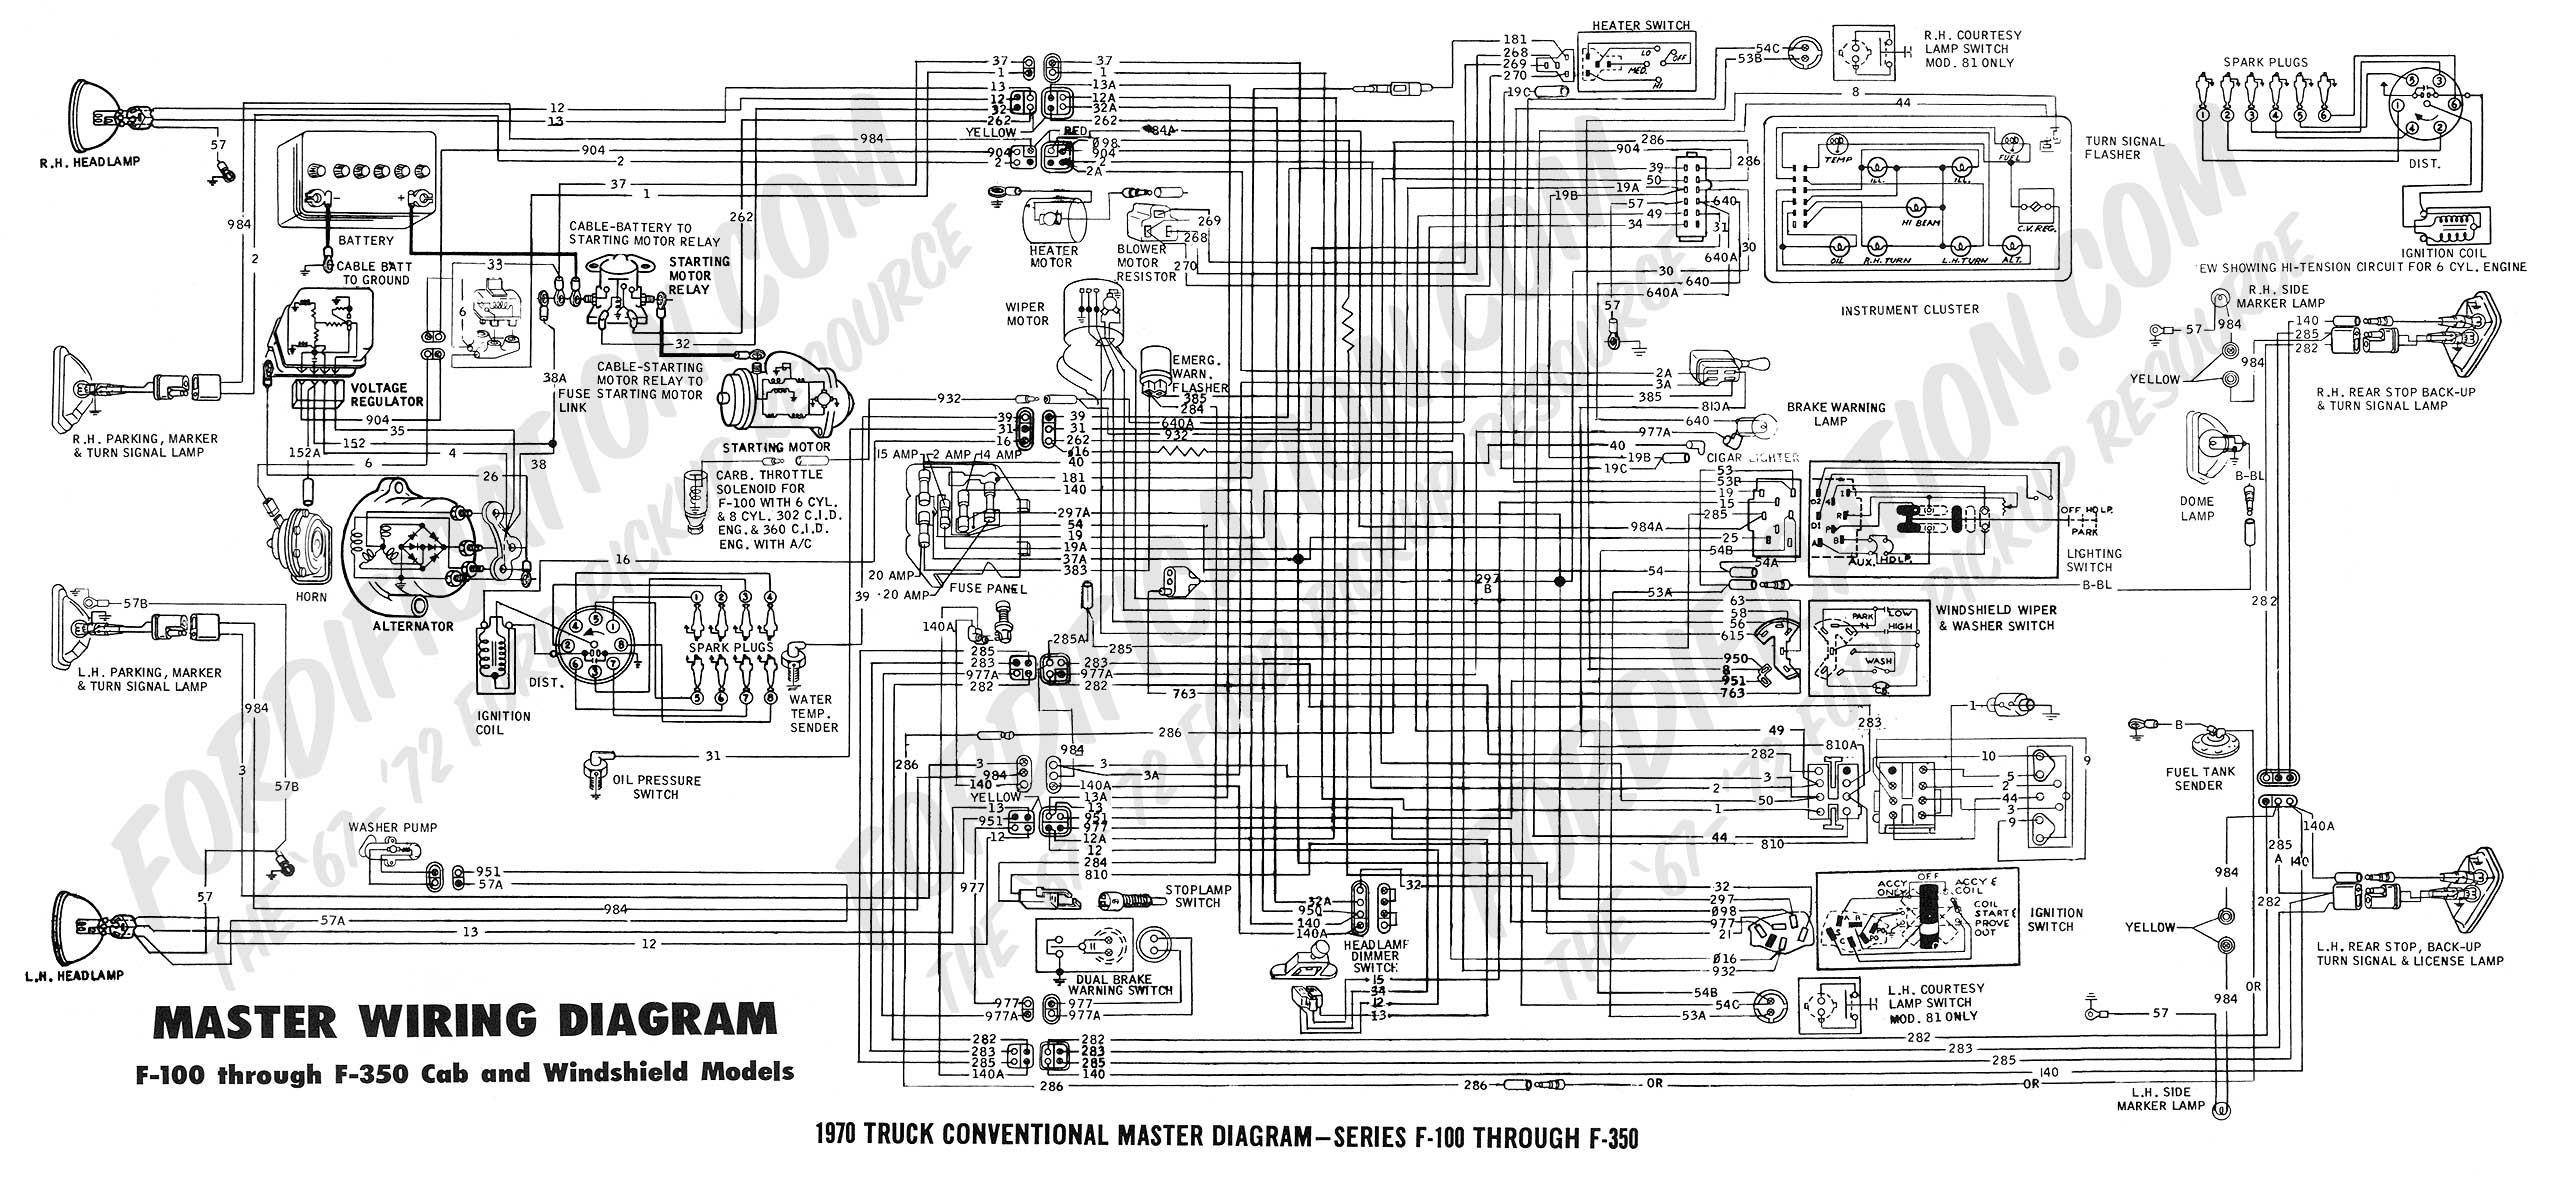 92 Ford Super Duty Wiring Diagram Manual E Books 2012 F250 Fuse 2003 F550 Diagram03 F350 2013